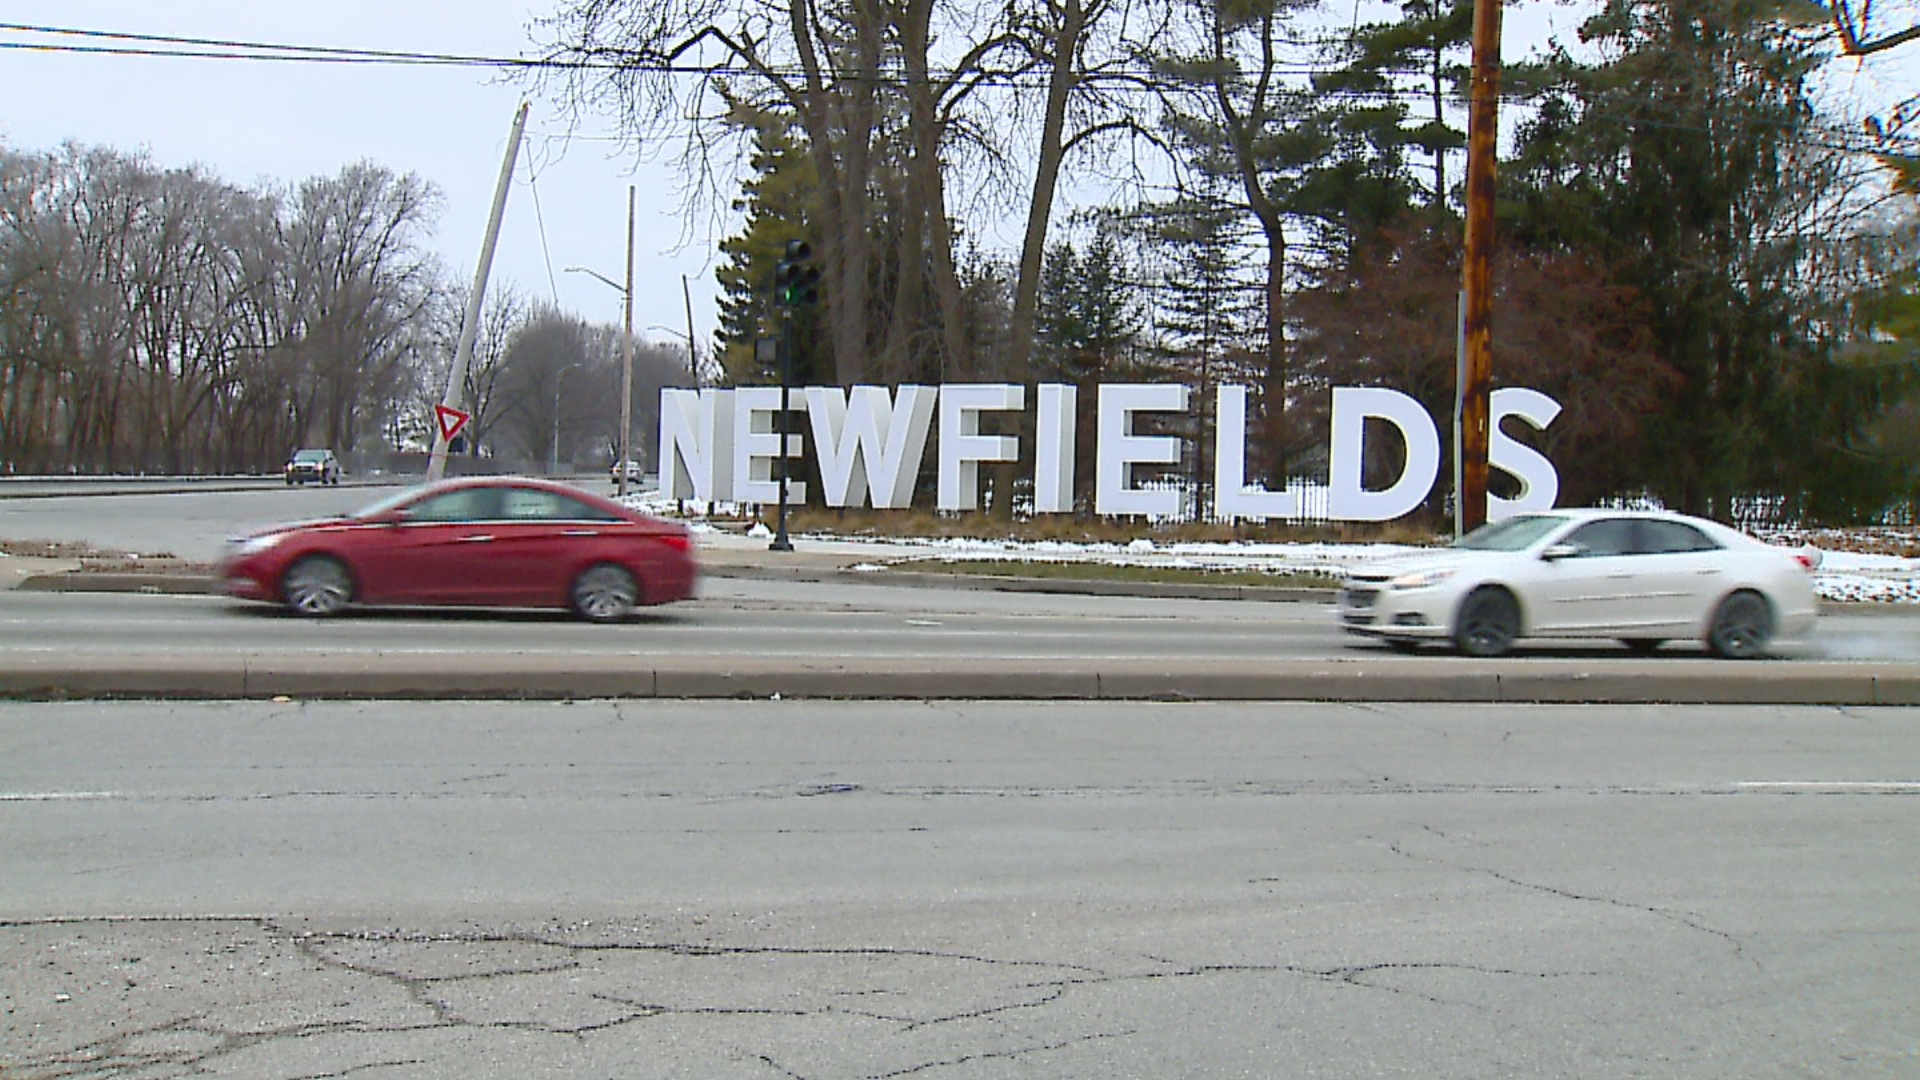 Petition calls for removal of Newfields CEO after job listing about 'traditional, core, white audience' - WISHTV.com